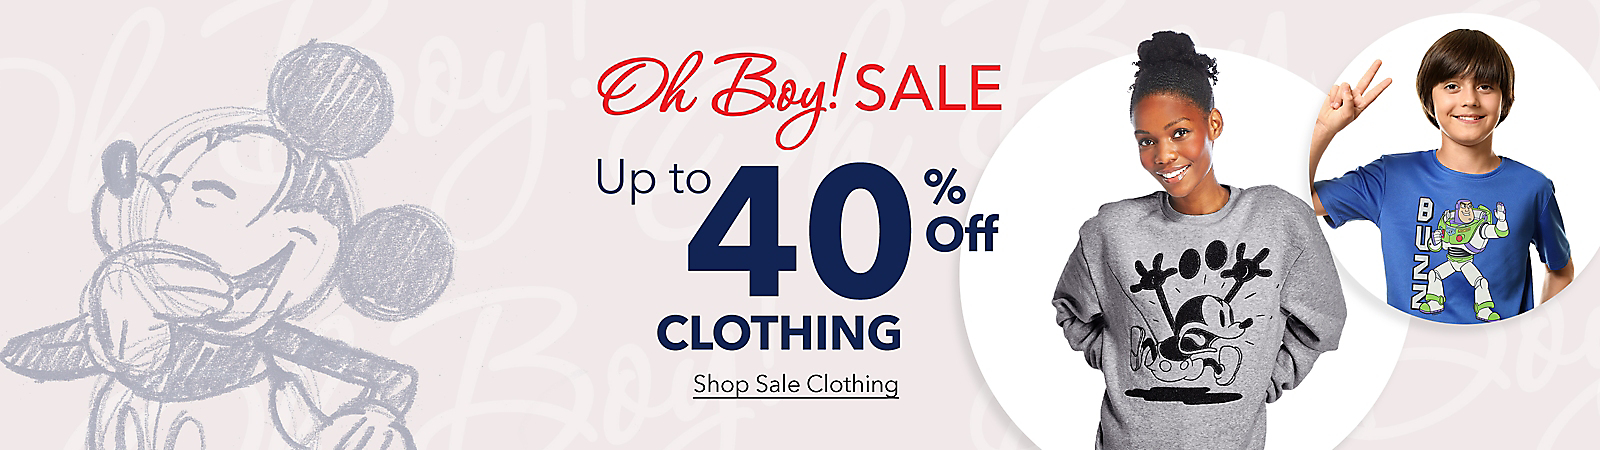 Oh, Boy! Sale on Now! Enjoy savings up to 40% off clothing. Shop Sale T-Shirts | Shop Sale Clothing